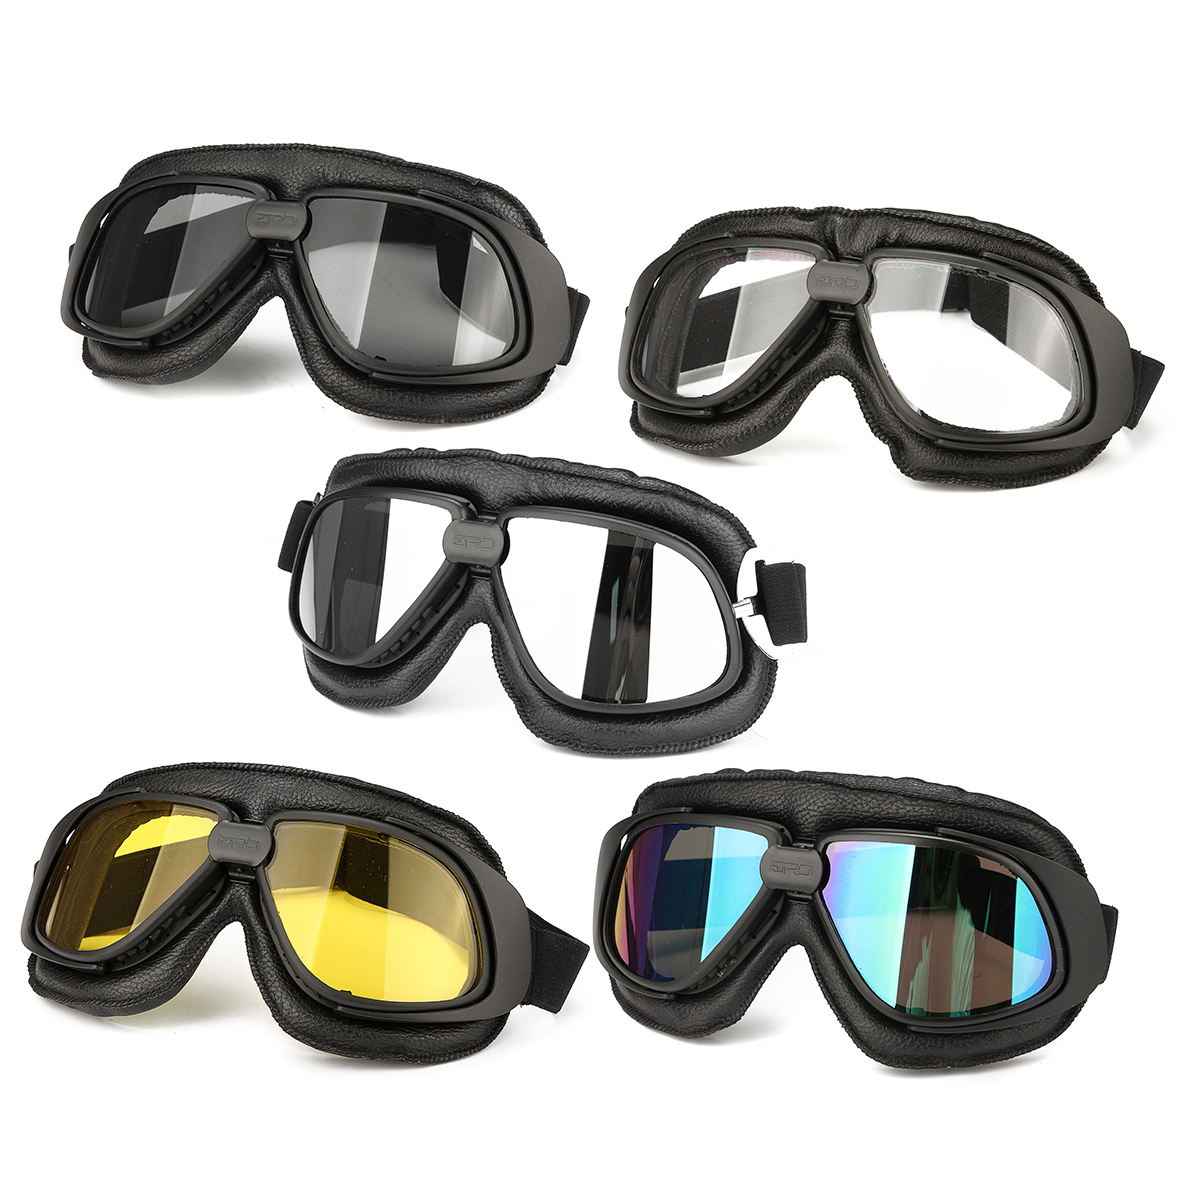 Motorcycle Goggles Motorbike Bike Helmet Eye Protection Glasses